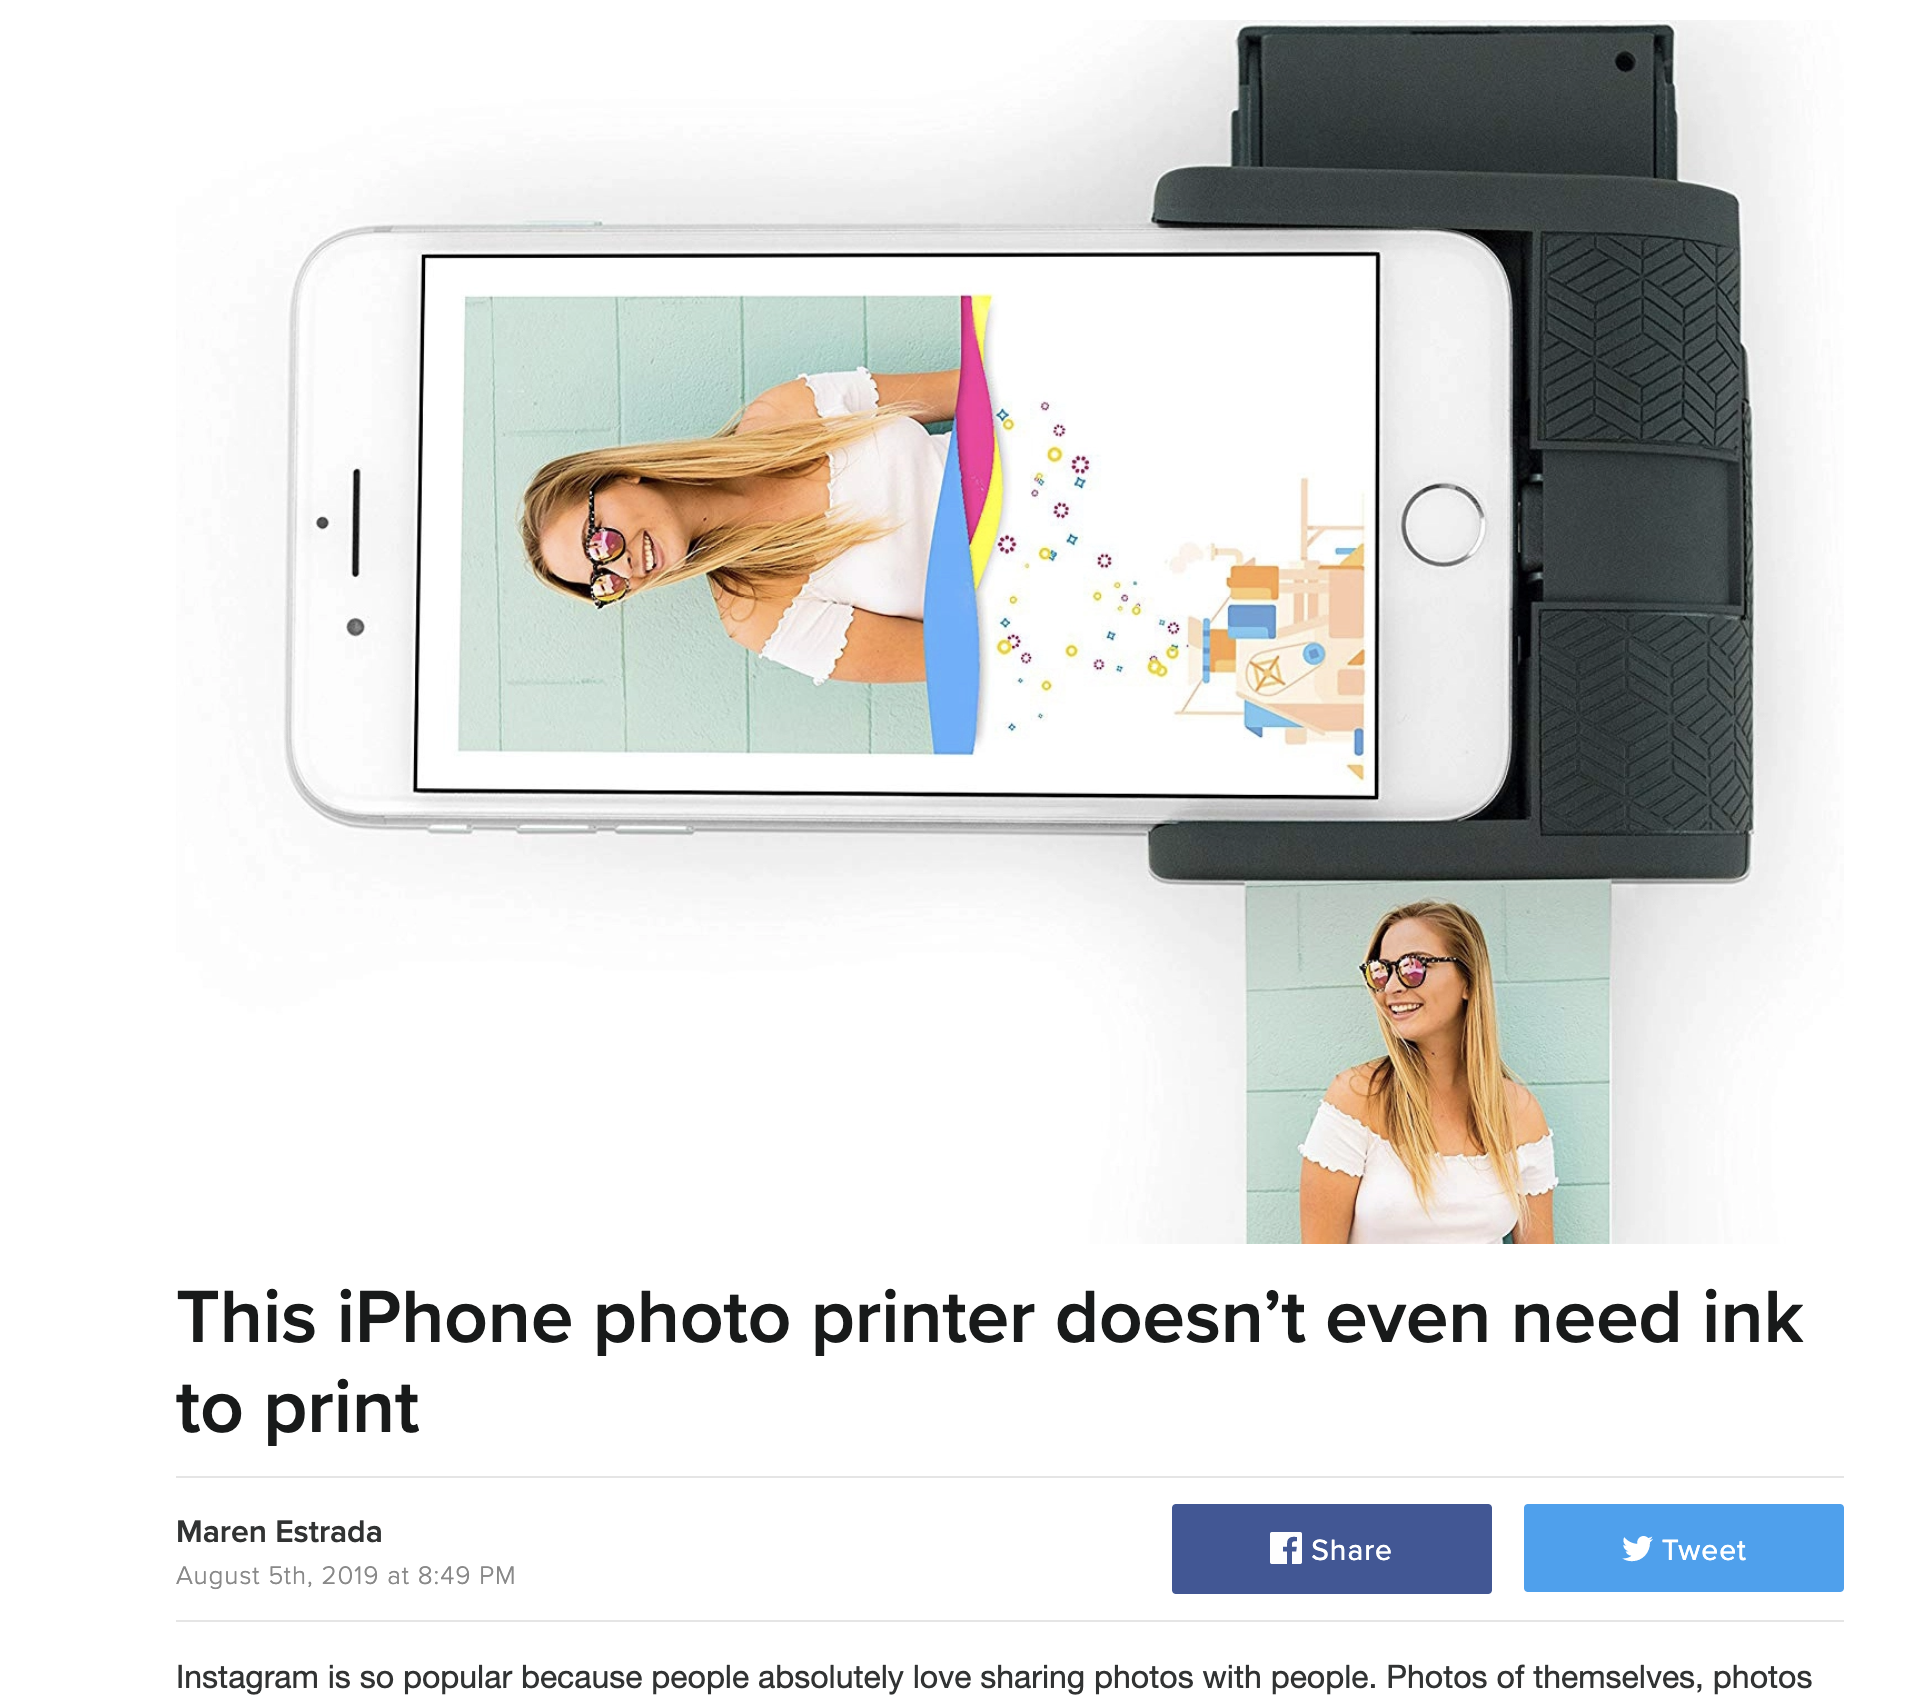 This iPhone photo printer doesn't even need ink to print